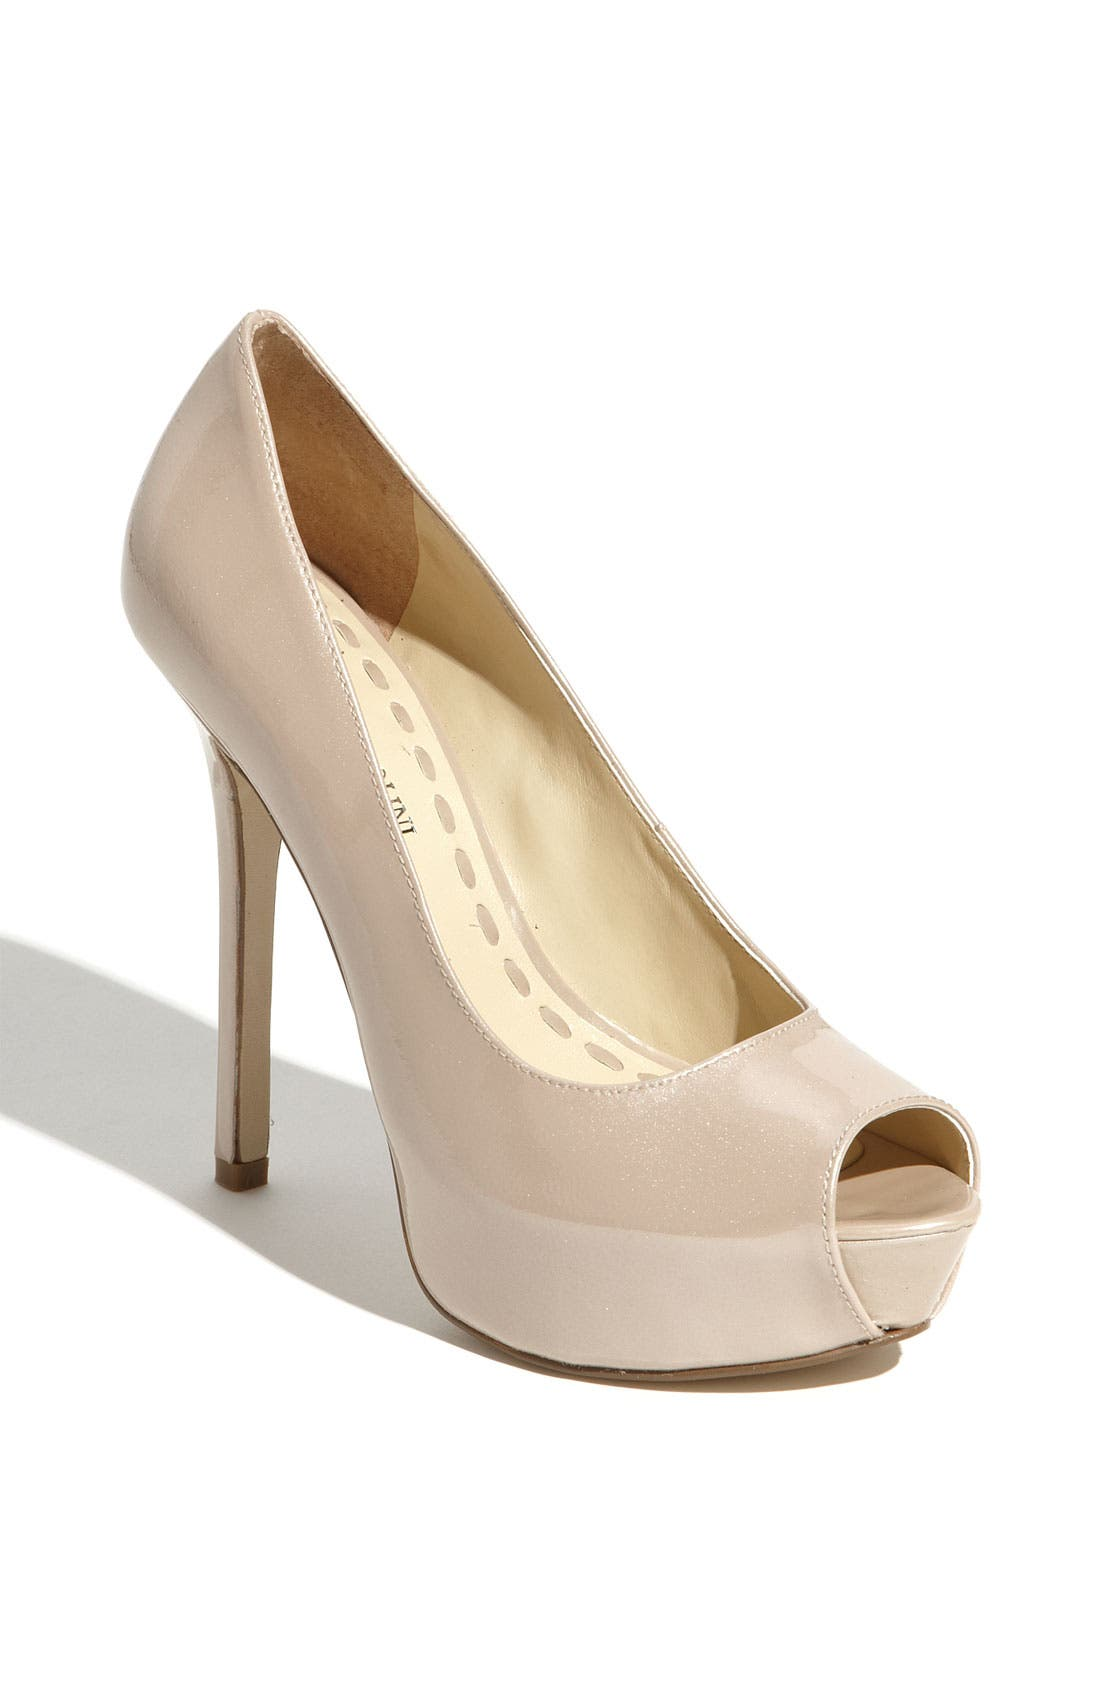 Alternate Image 1 Selected - Enzo Angiolini 'Tanen' Pump